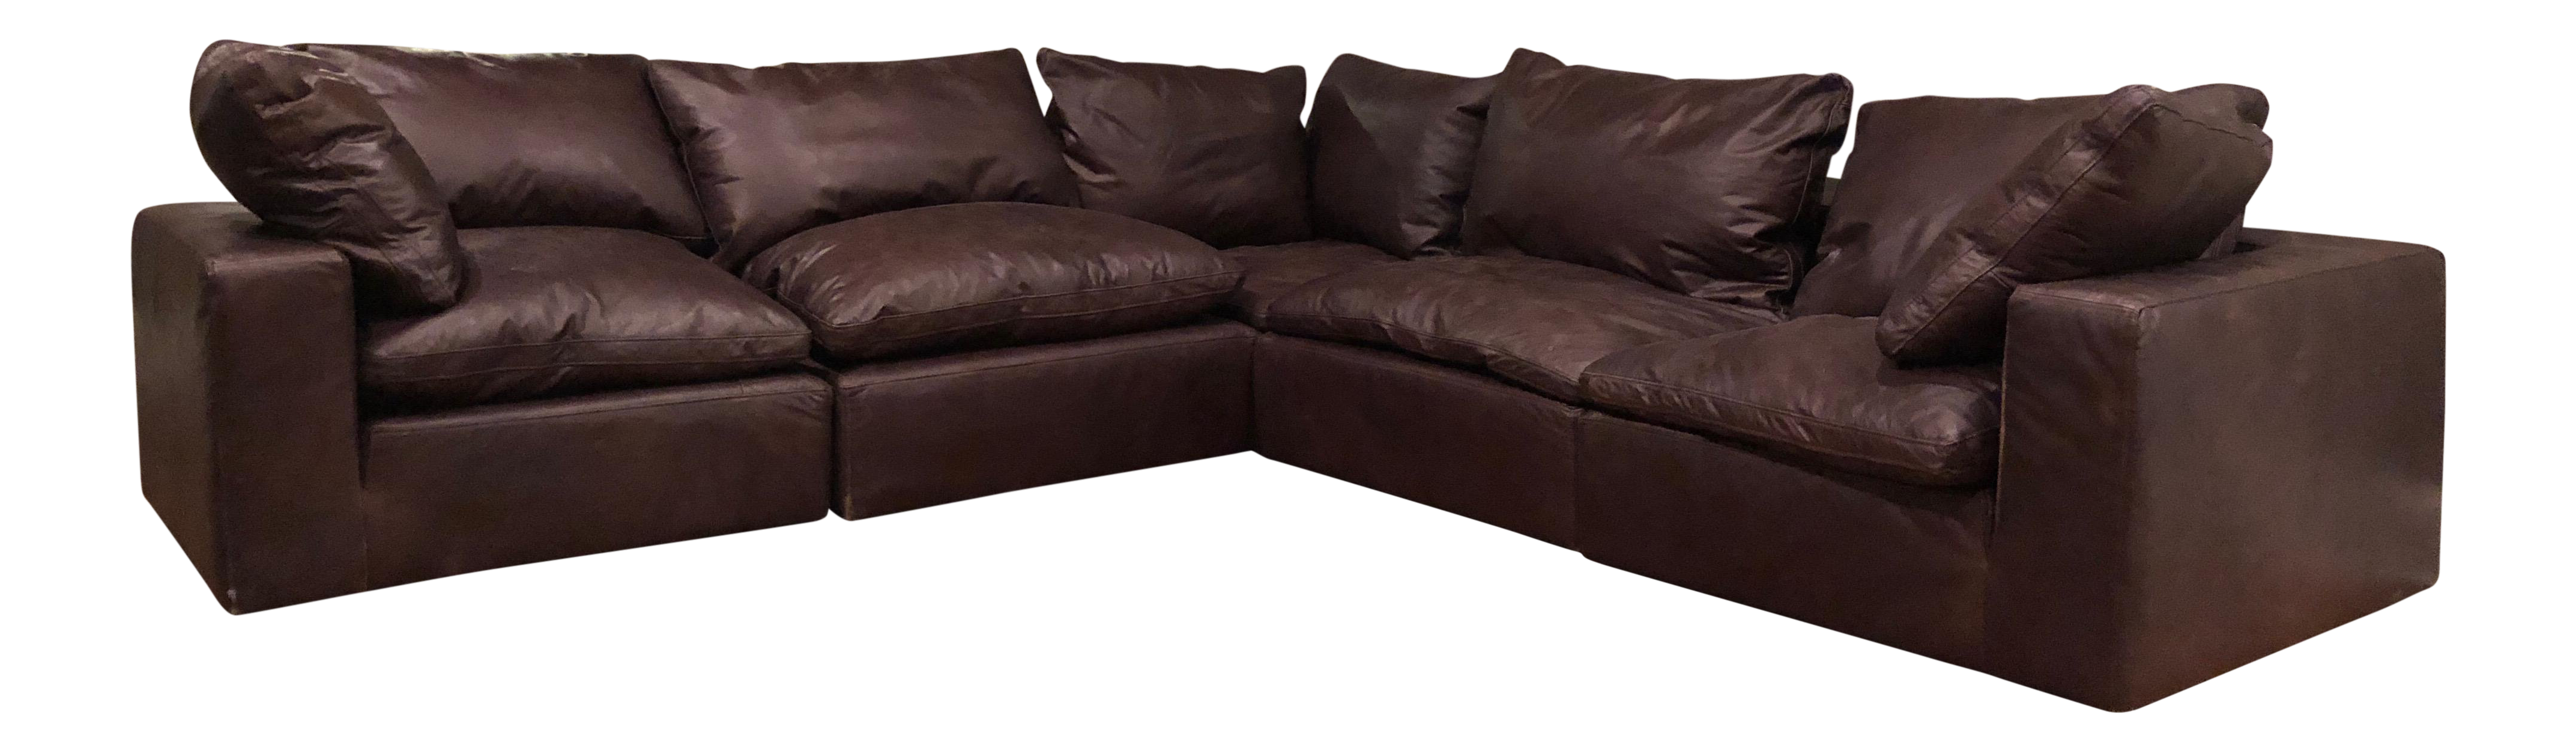 Gently Used Restoration Hardware Furniture Up To 50 Off At Chairish